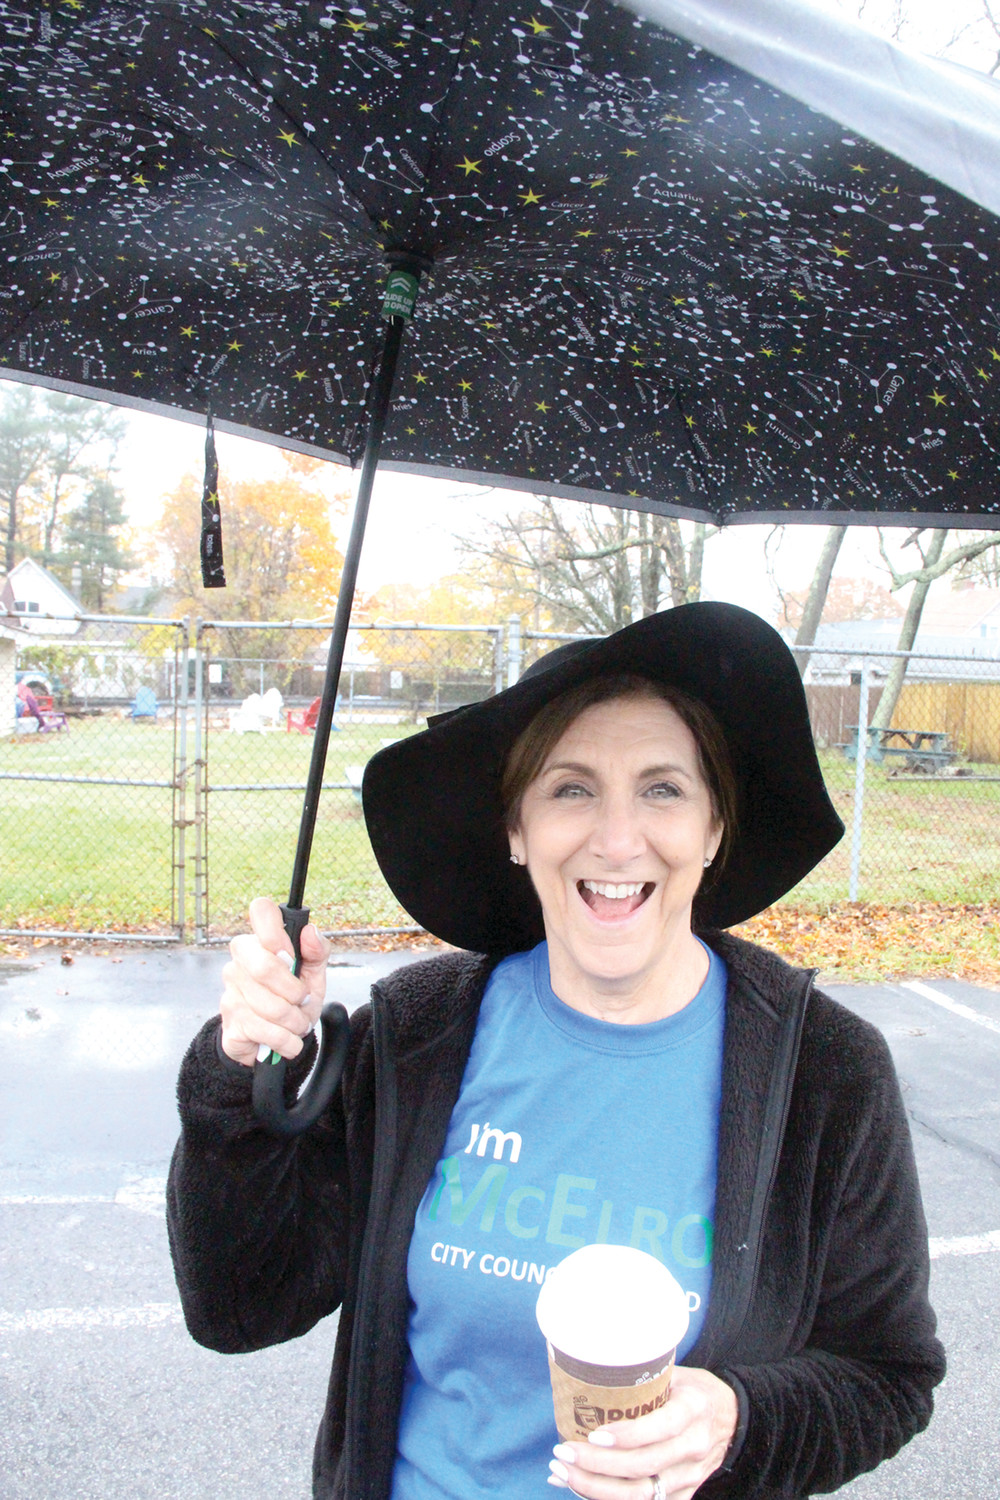 PRINCIPAL SUPPORTER: Prepared with an umbrella, Charlee McElroy, wife of Ward 4 candidate James McElroy, greeted voters arriving Tuesday morning at William Shields Post in Conimicut. Charlee is interim principal at Sherman School.